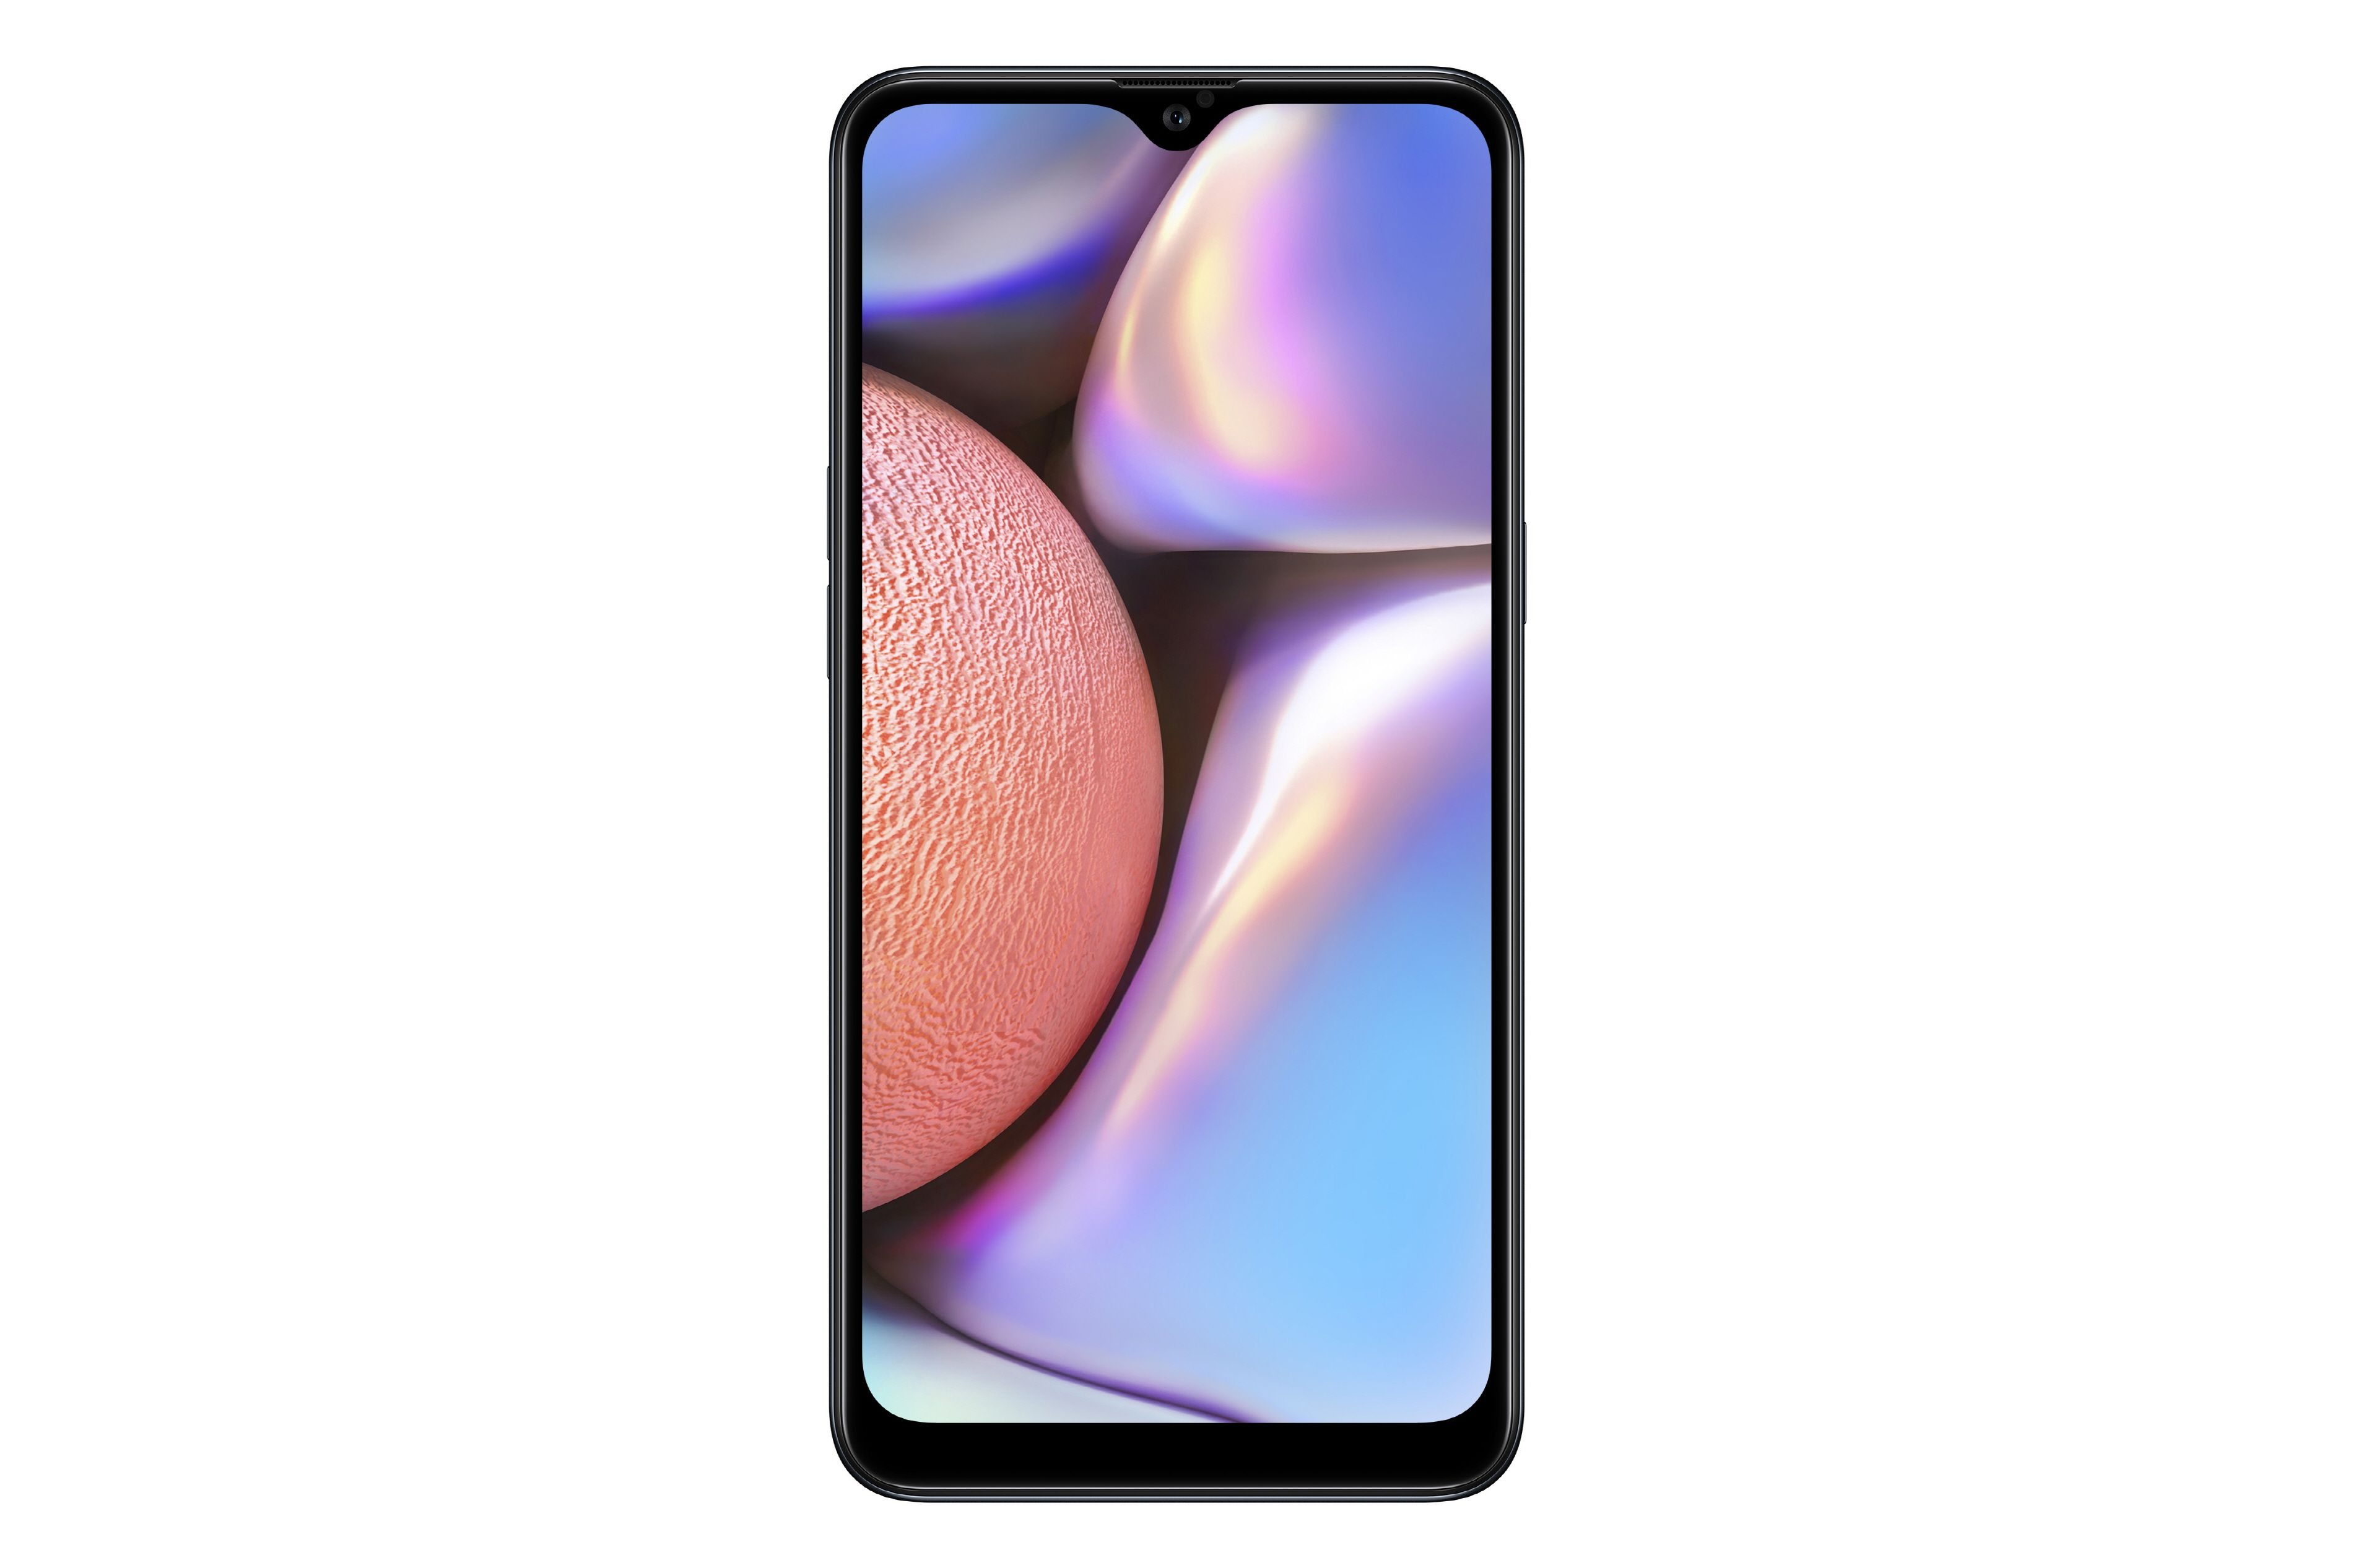 Samsung Galaxy A11 SM-A115 with android 10 32gb storage leaked